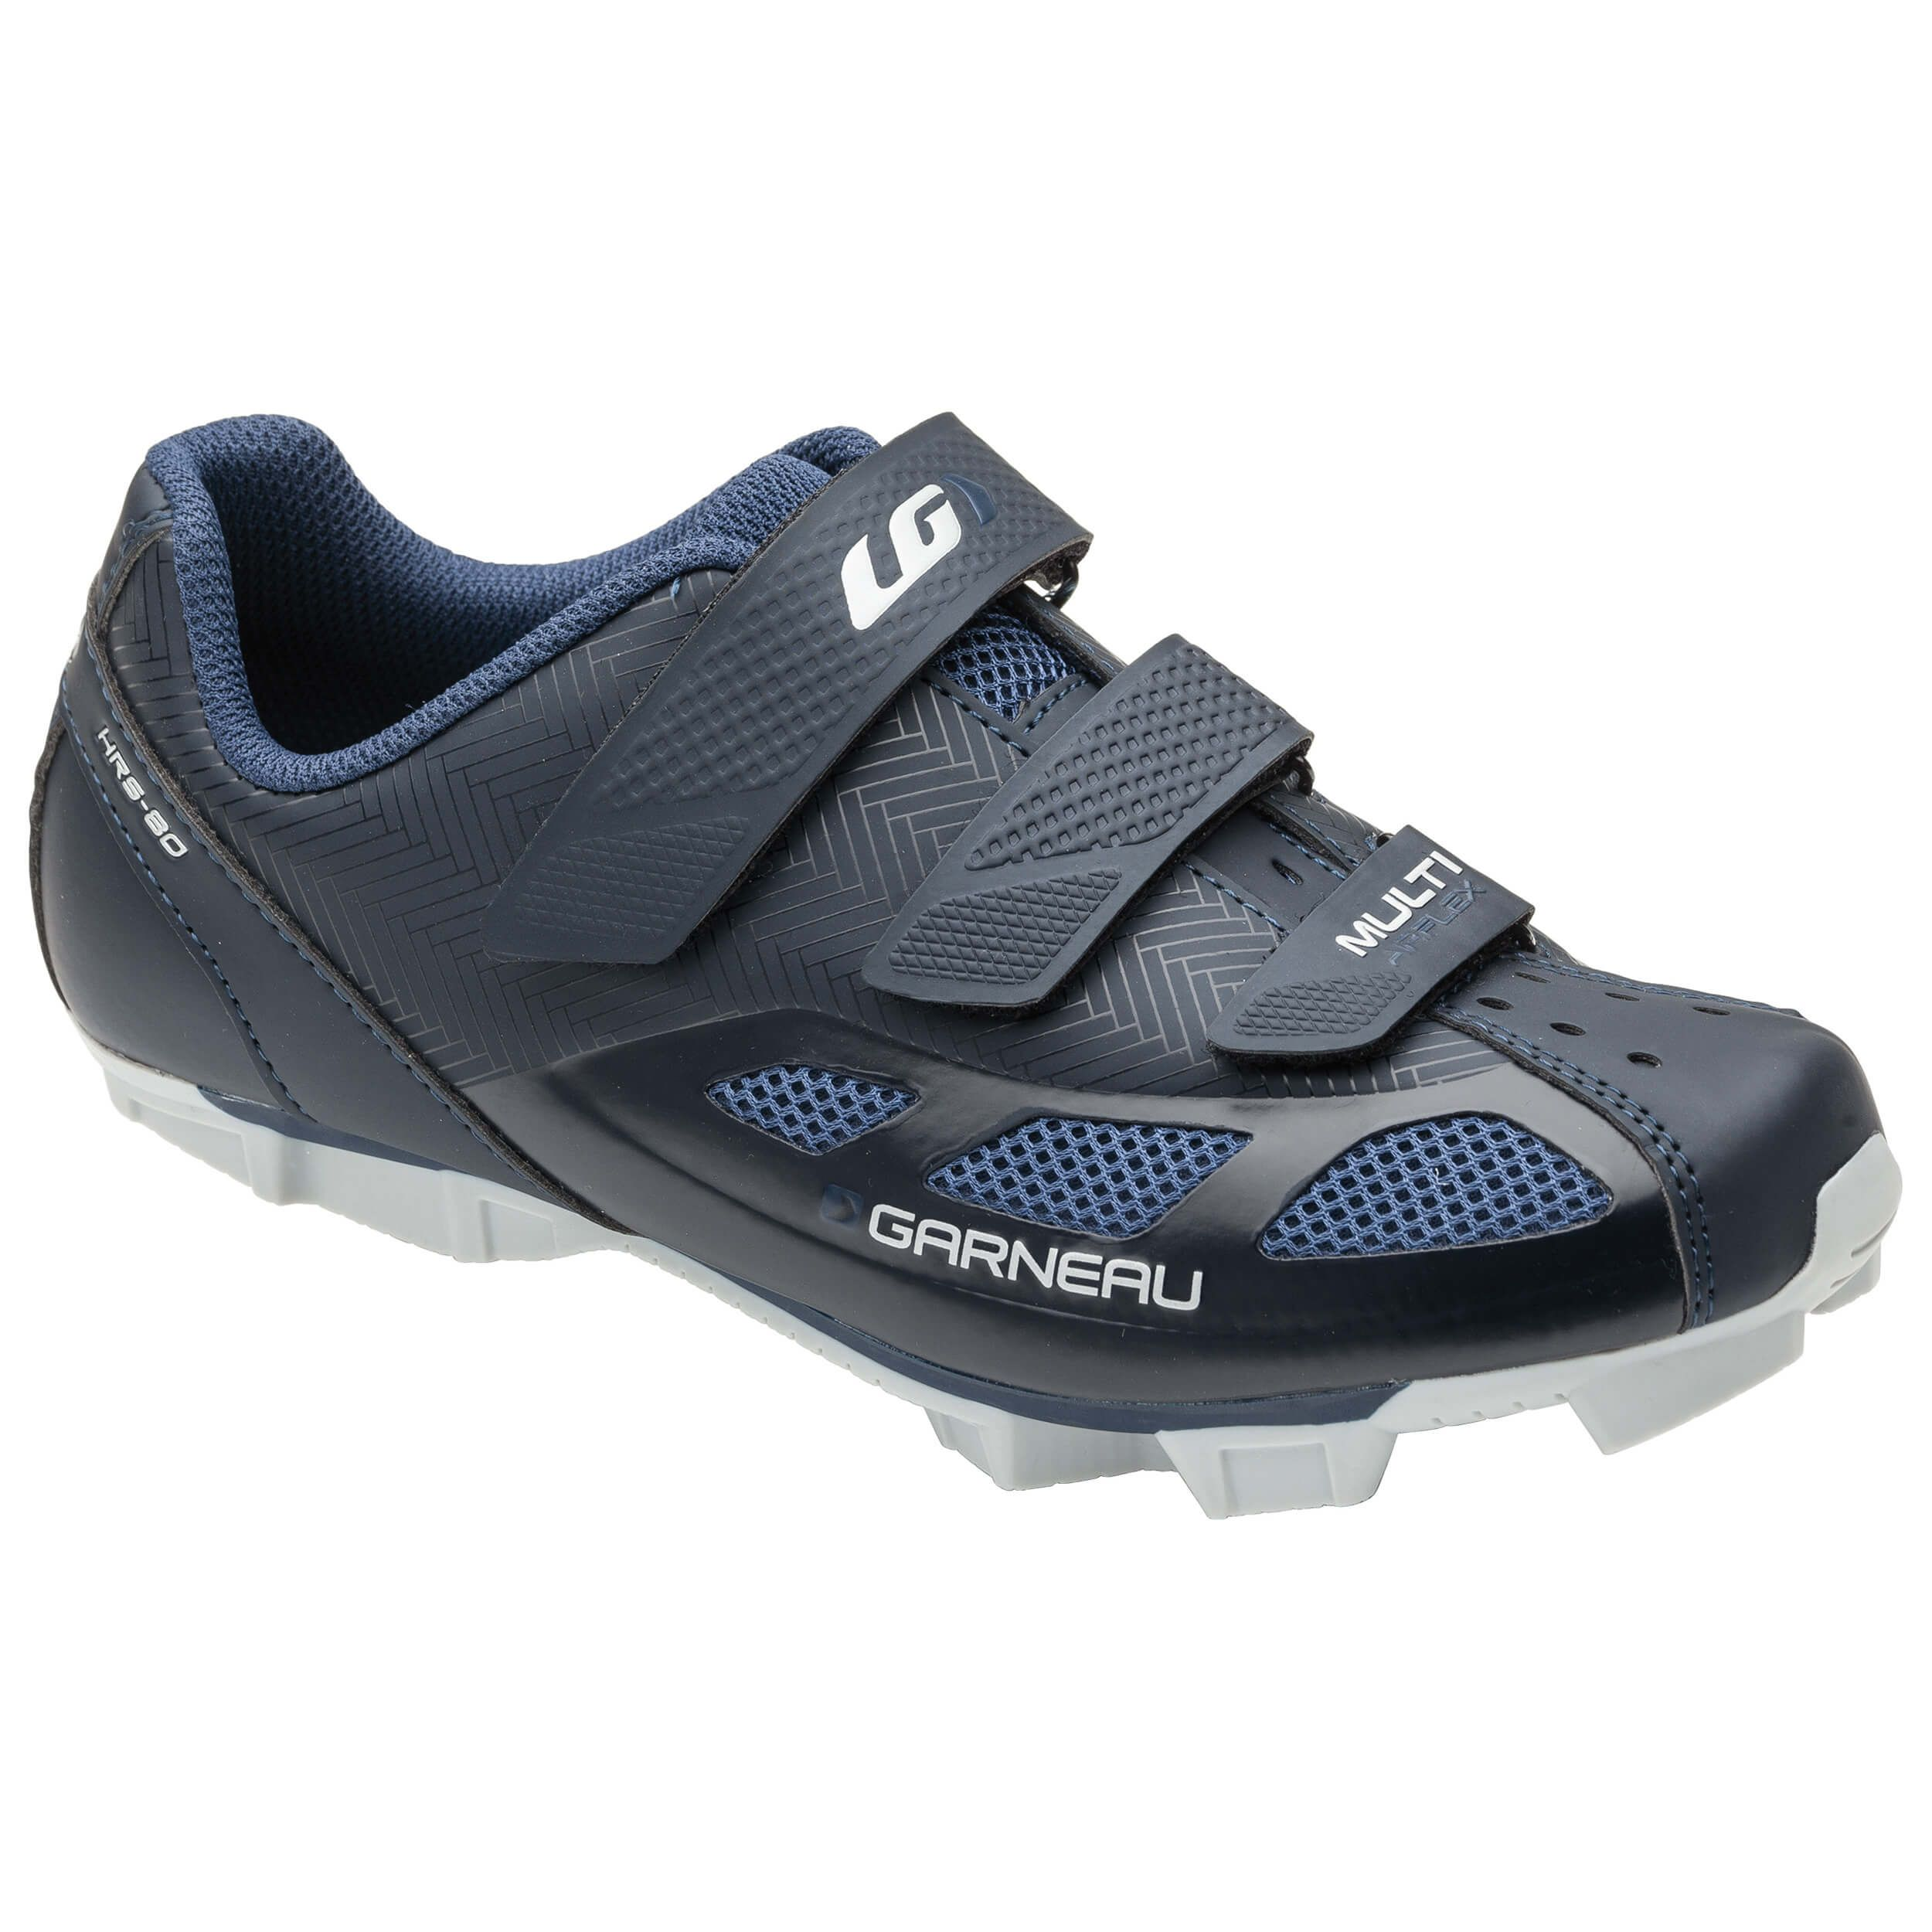 garneau women\u0027s multi air flex cycling shoes garneau usa NY Form 1 women\u0027s multi air flex cycling shoes